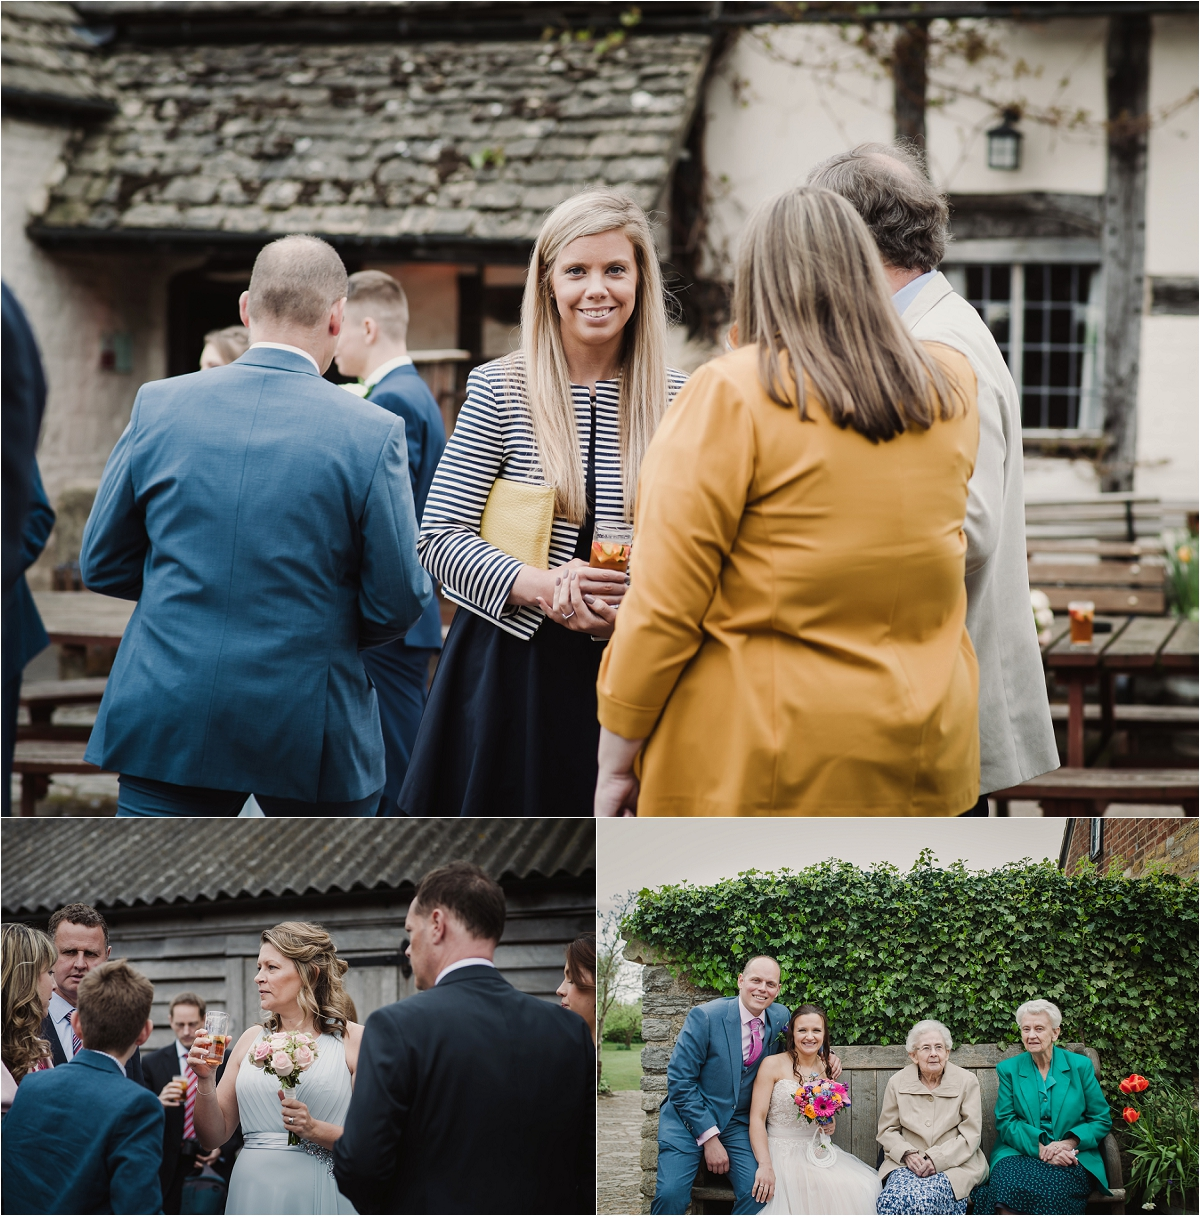 chris_emma_wedding_the_Fleece_inn_0038.jpg